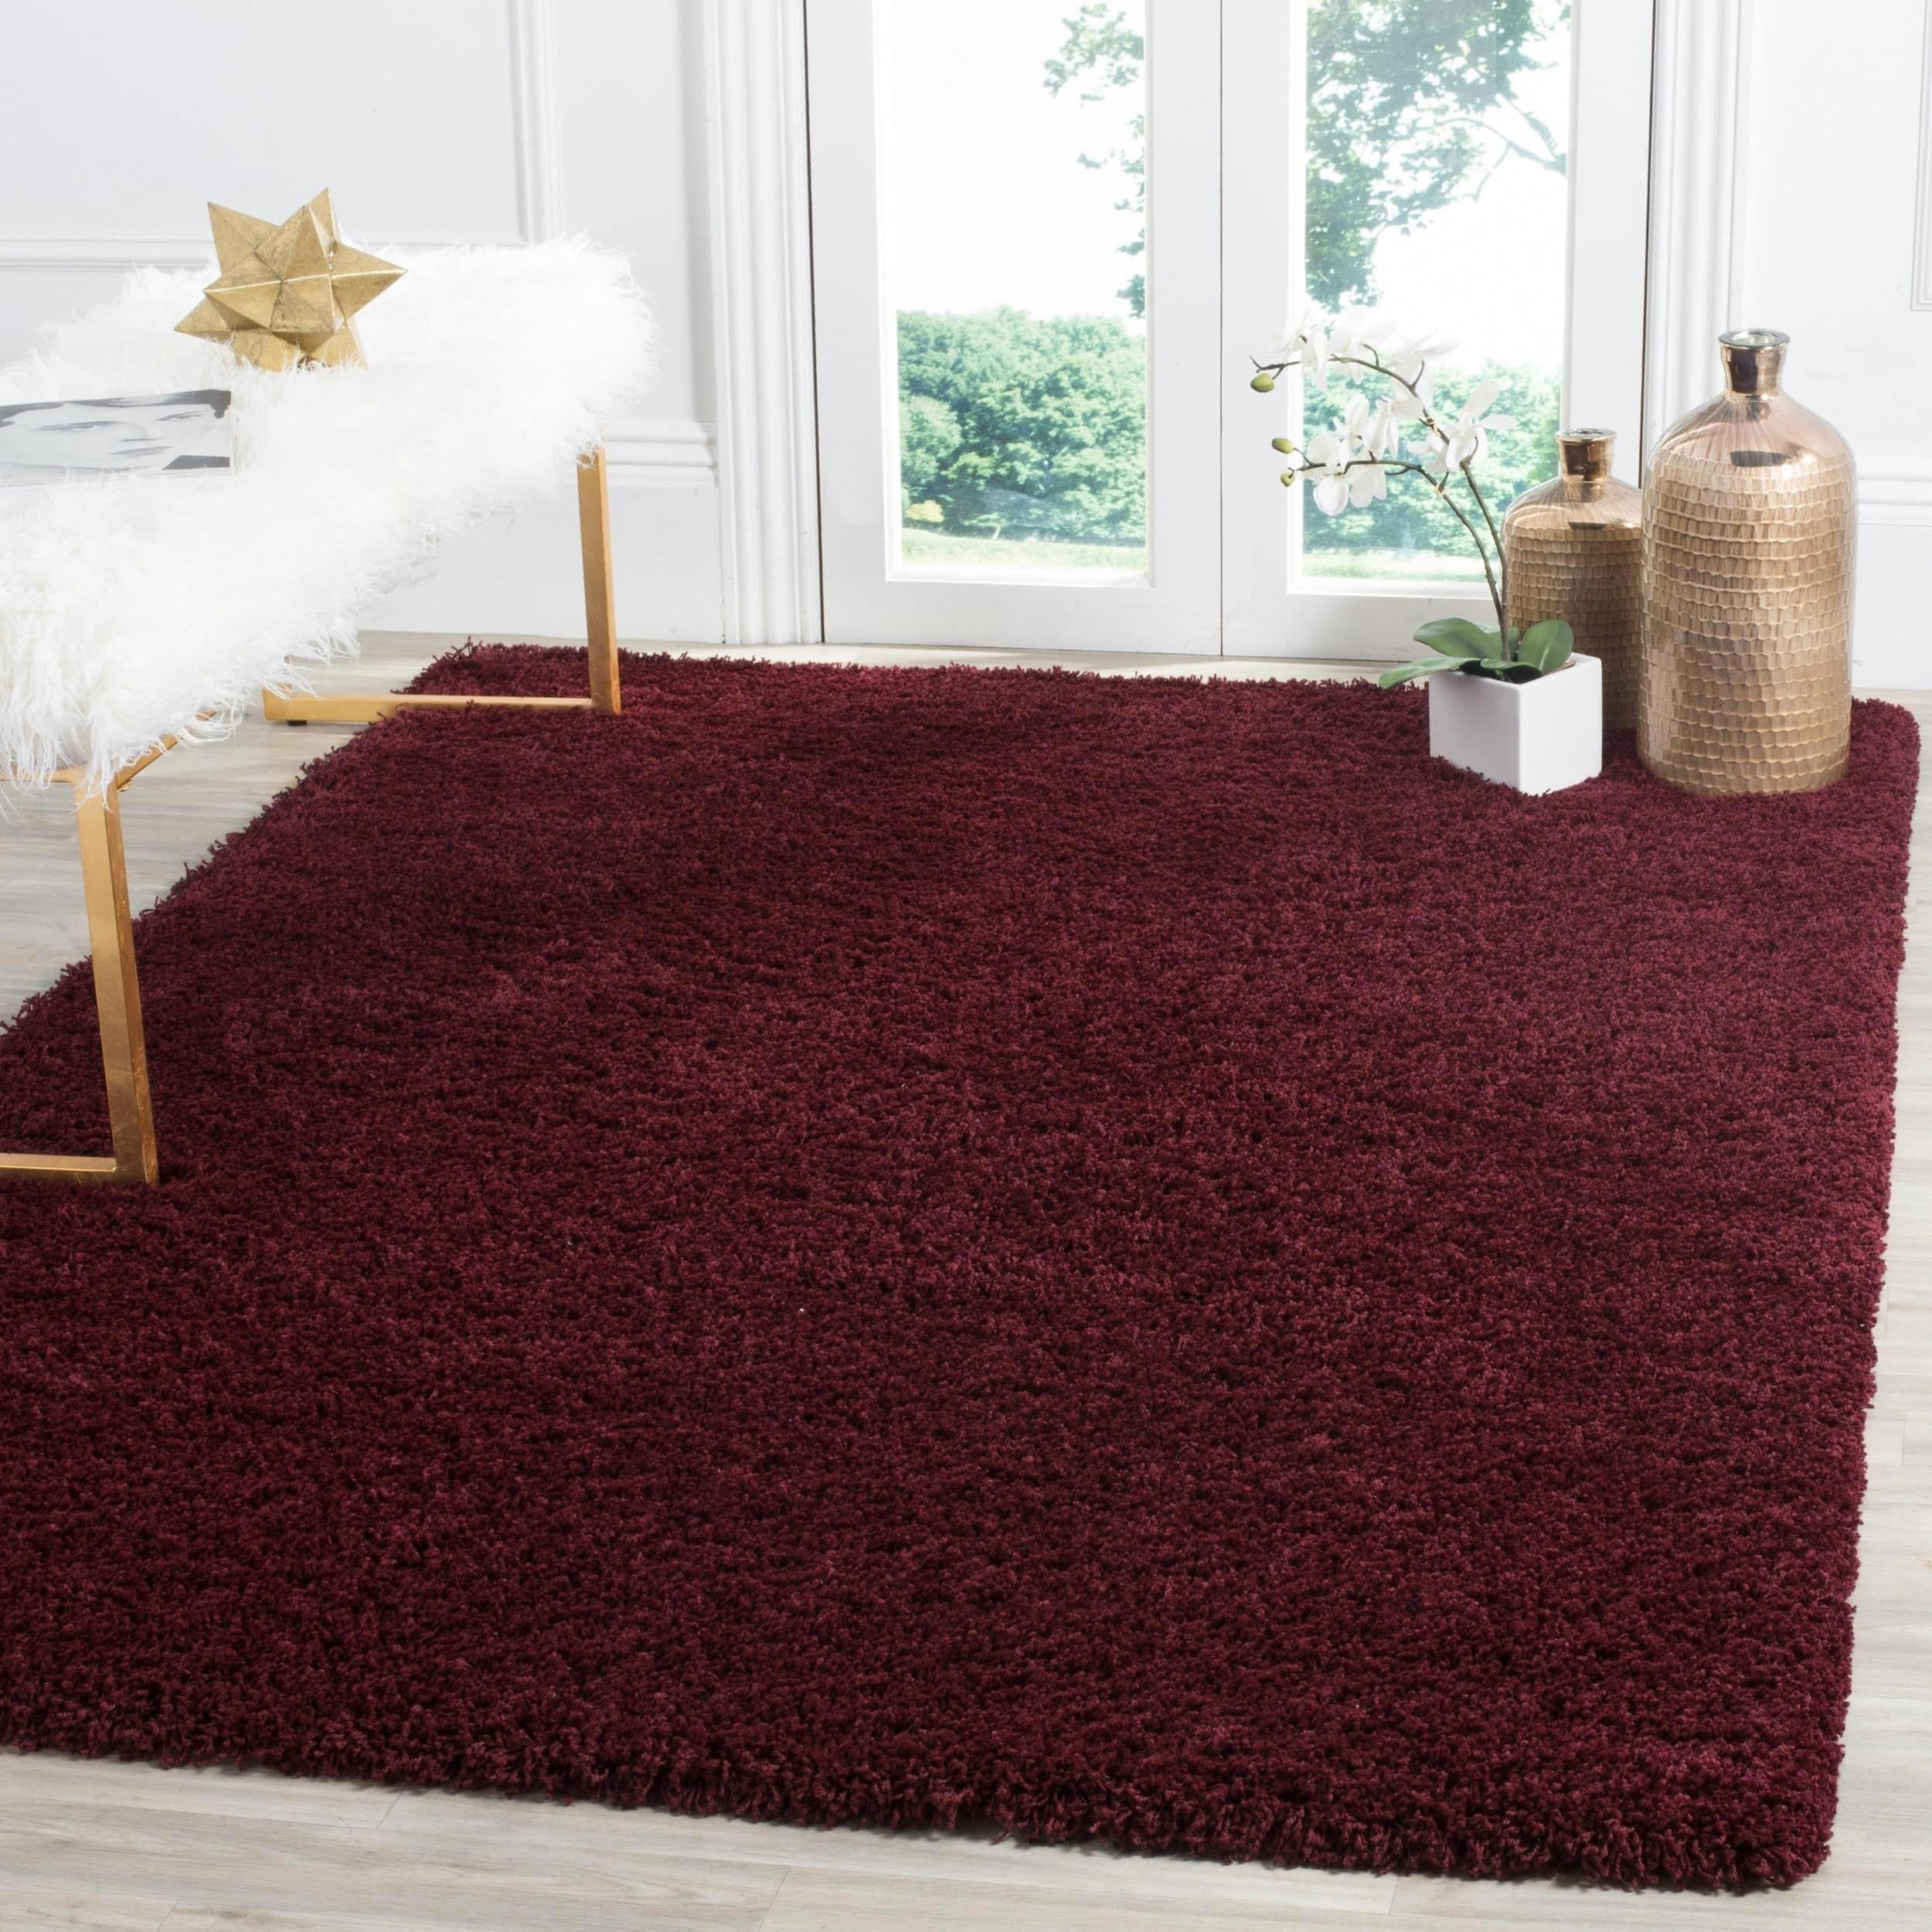 An Inspiration Board Filled With Your Preferred Rooms Furnishings Pieces Color In 2020 Burgundy Rugs Burgundy Living Room Burgundy Bedroom